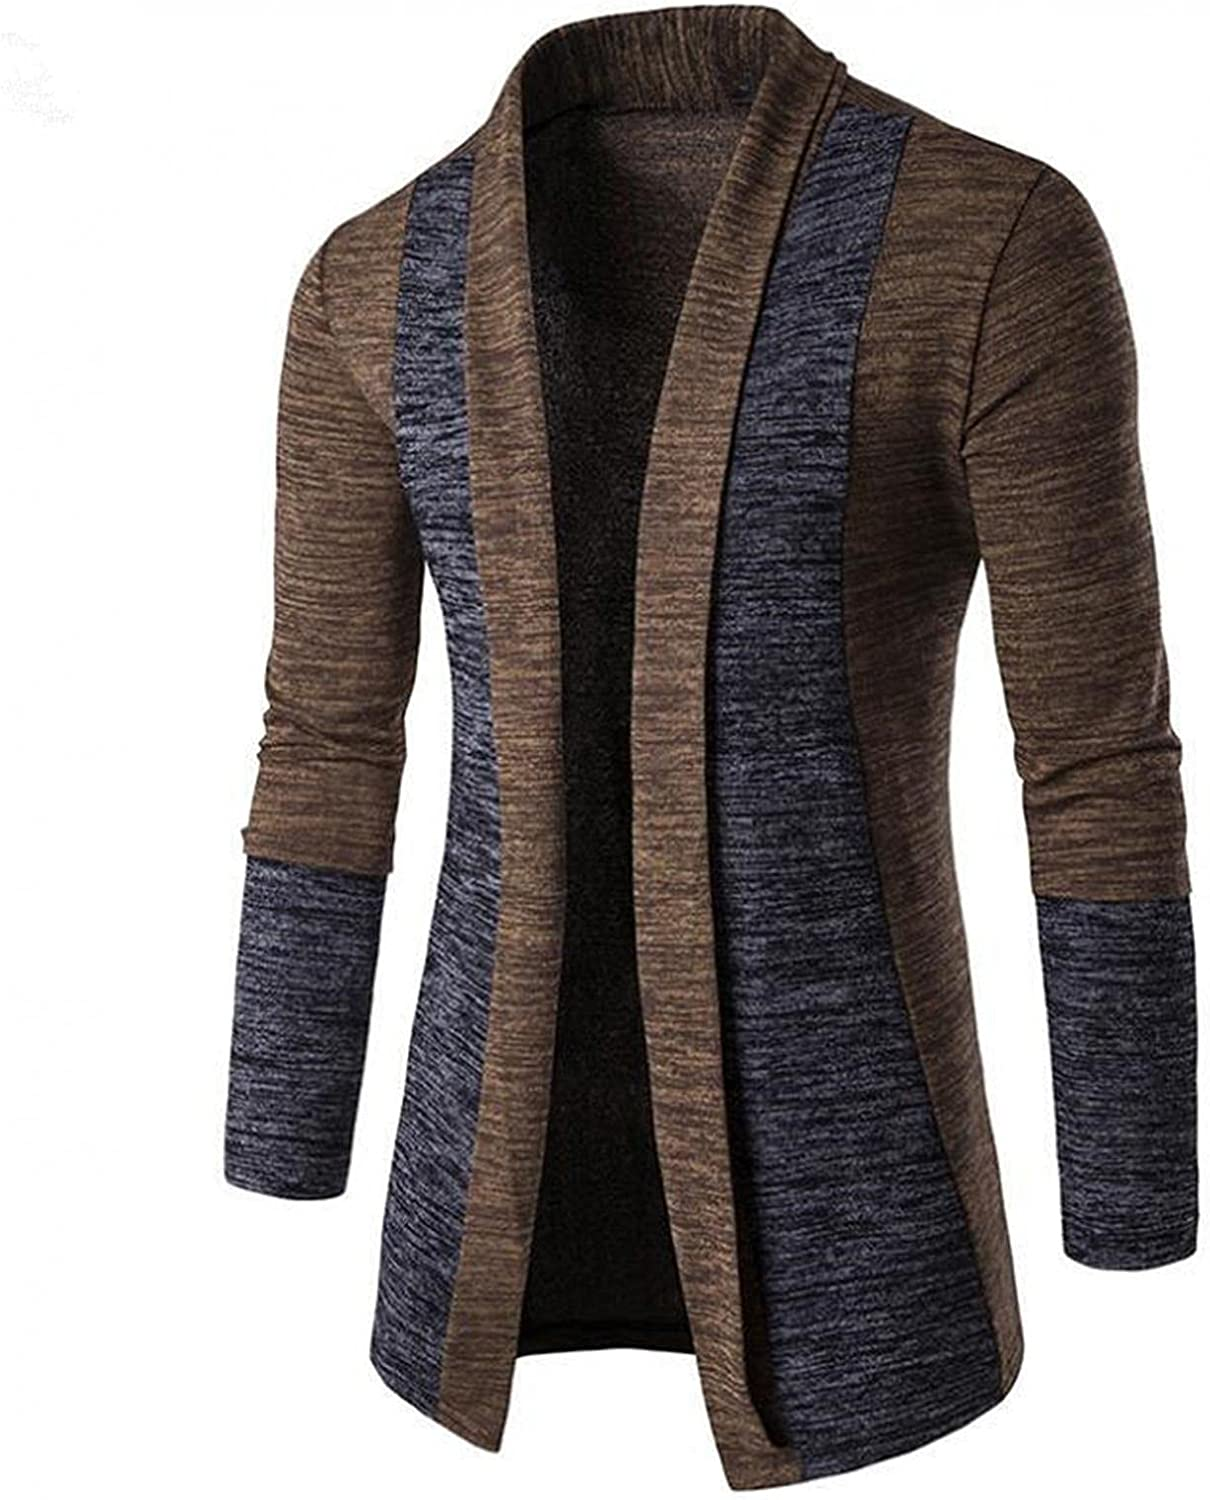 Men's Fashion Patchwork Sweaters Autumn Casual Cardigan Knitted Jacket Long Sleeve Slim Fit Outwear